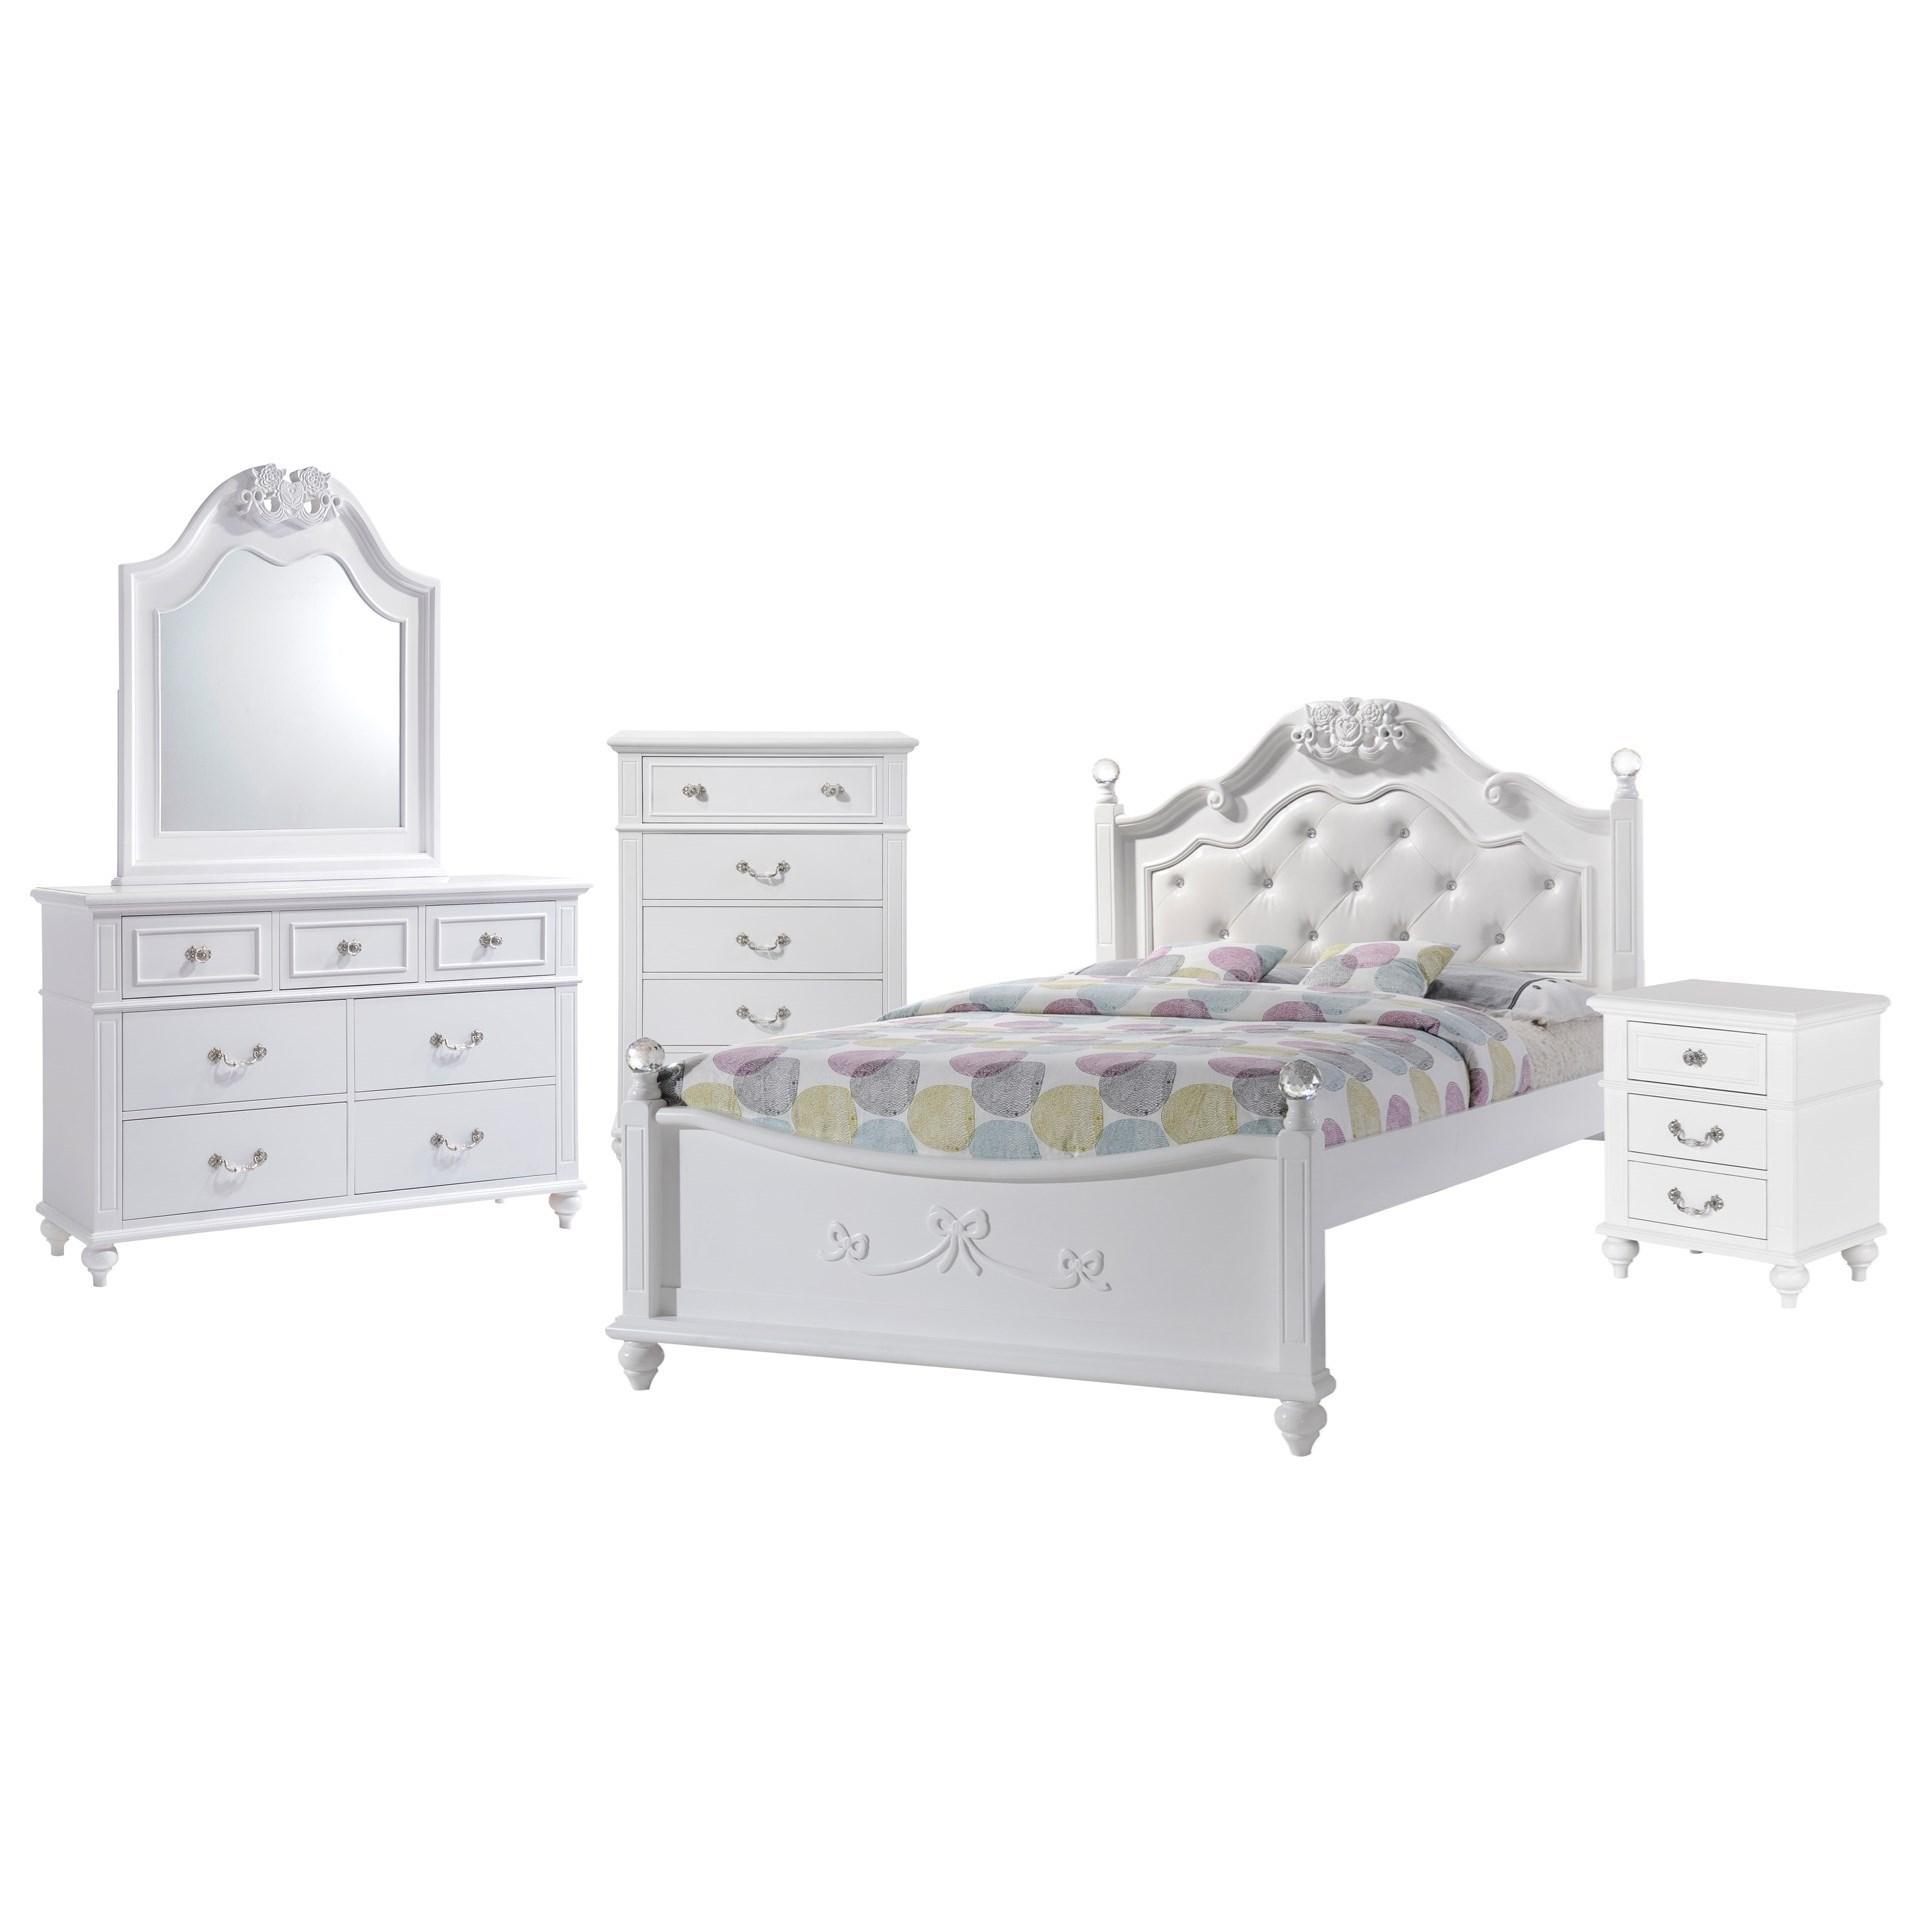 Full 5-Piece Bedroom Set